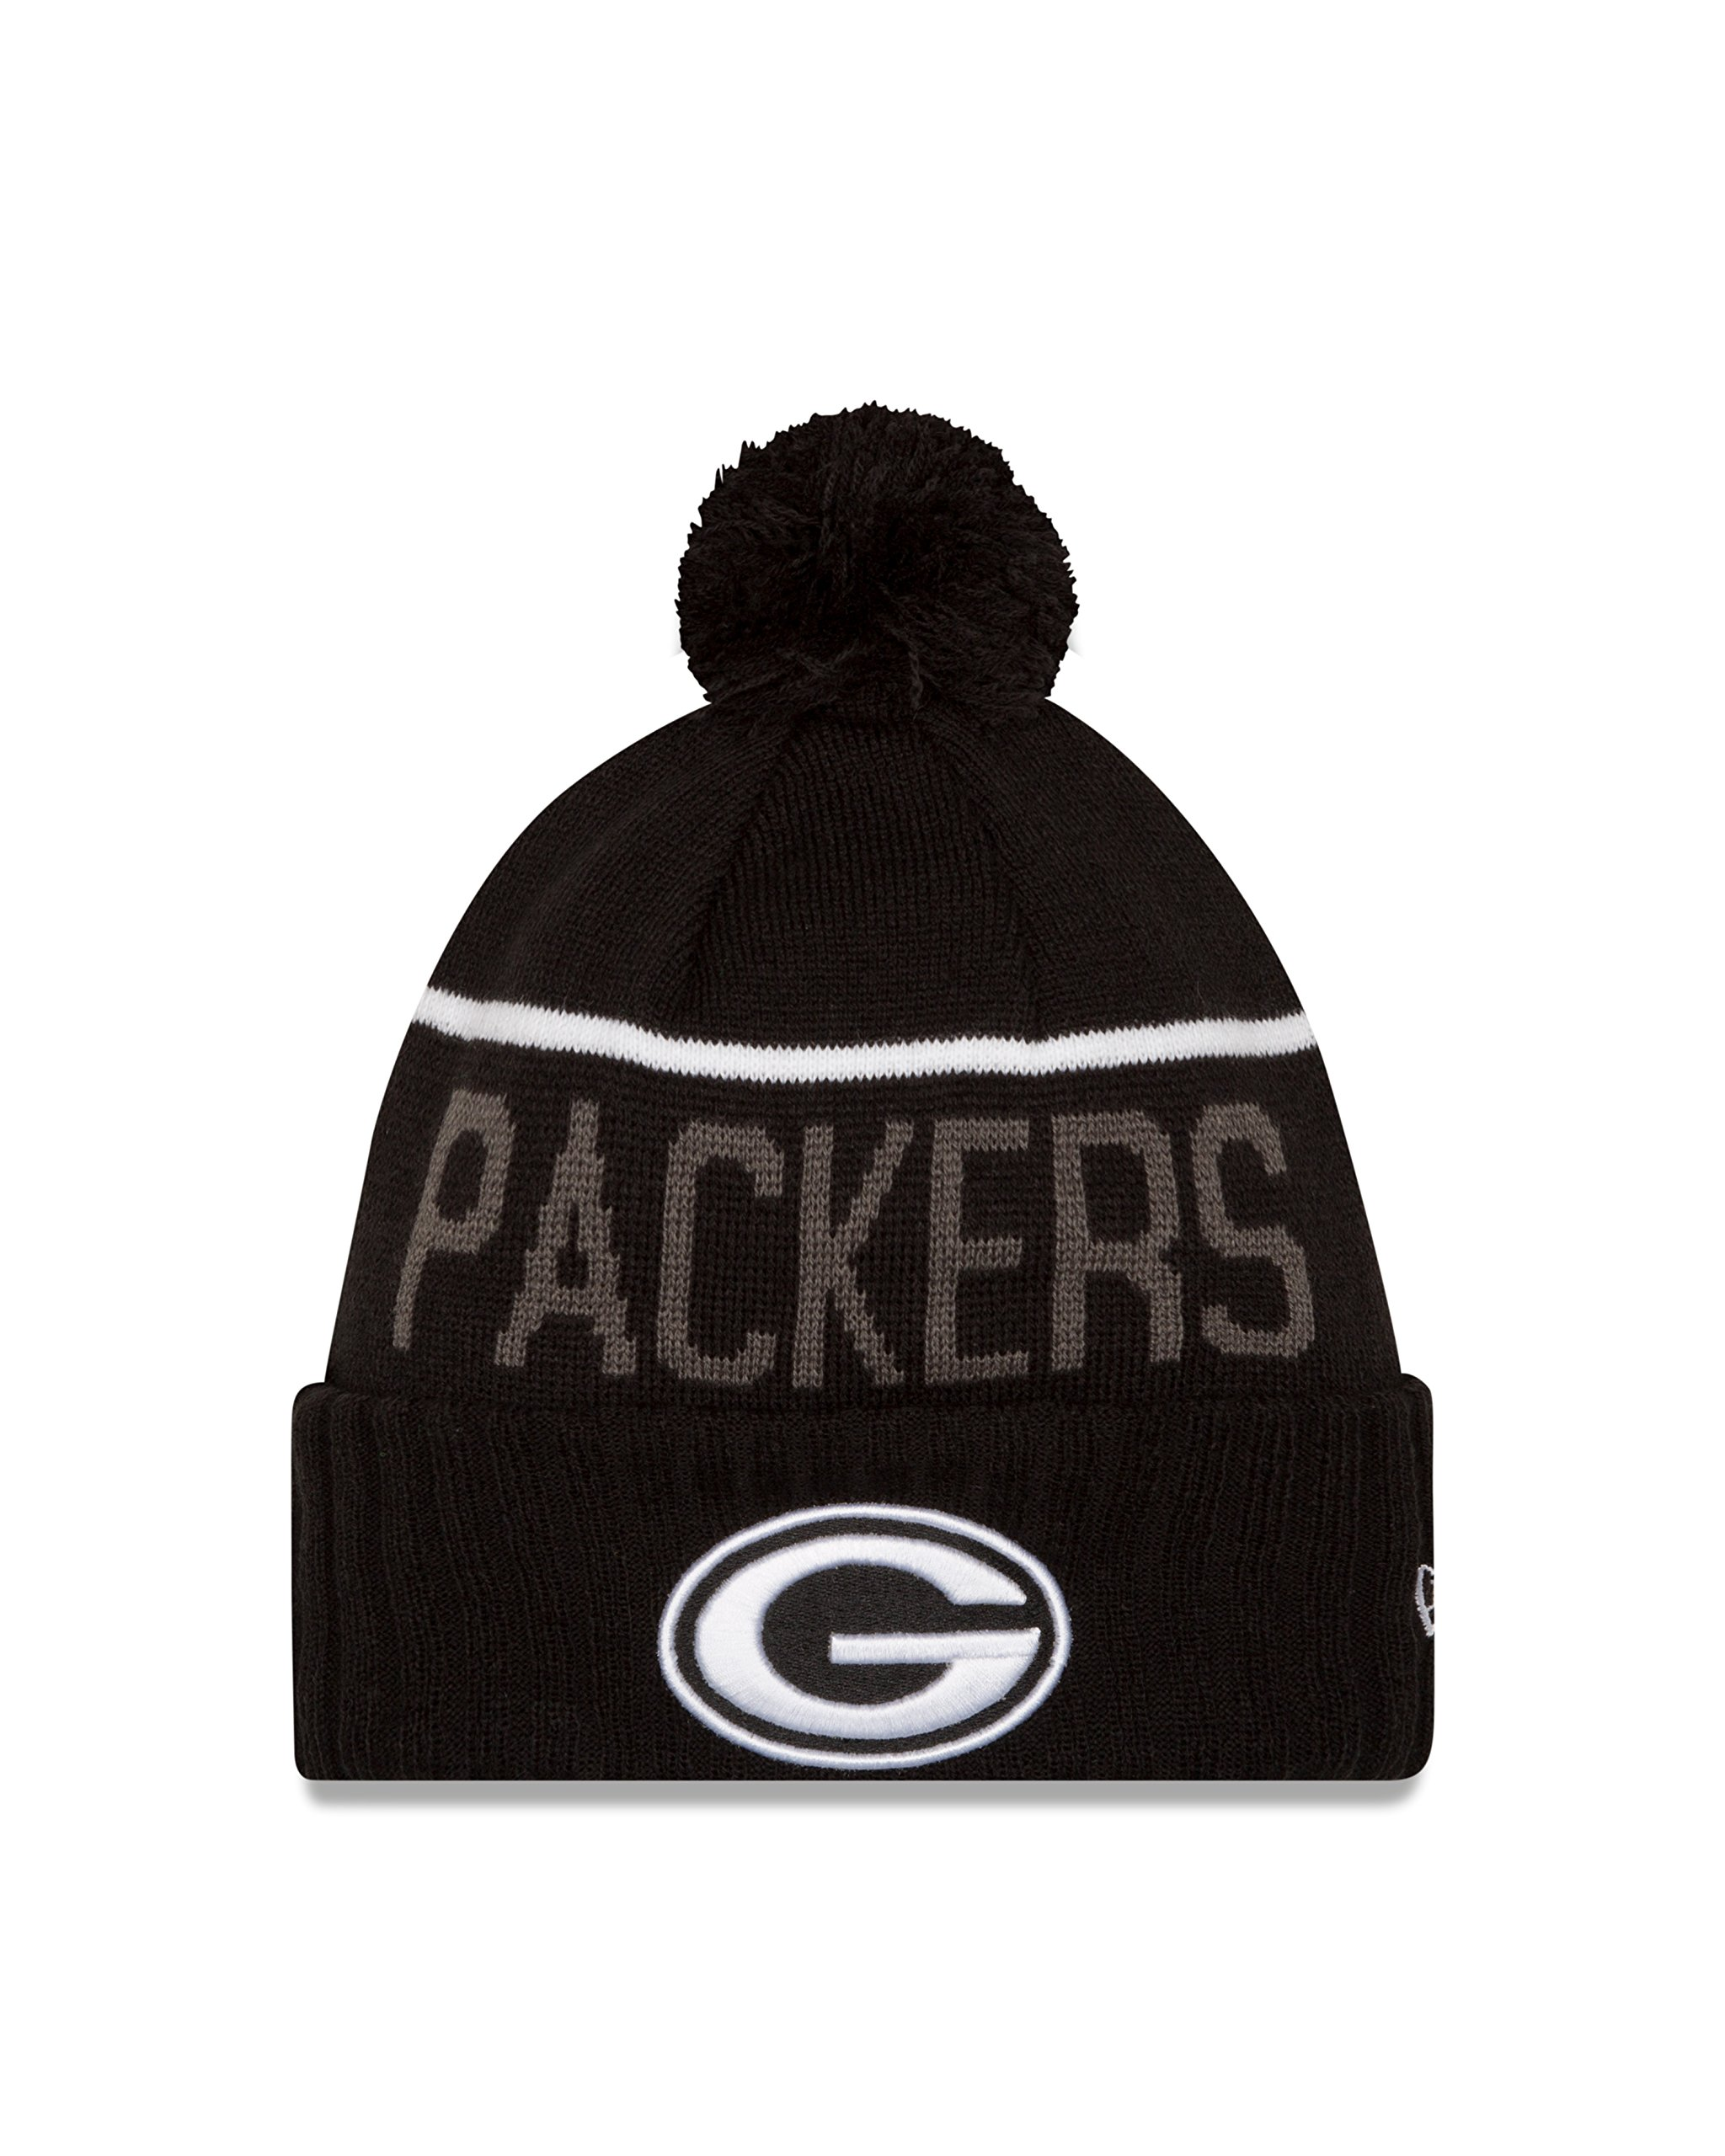 NFL Green Bay Packers 2015 Sport Knit, Black, One Size